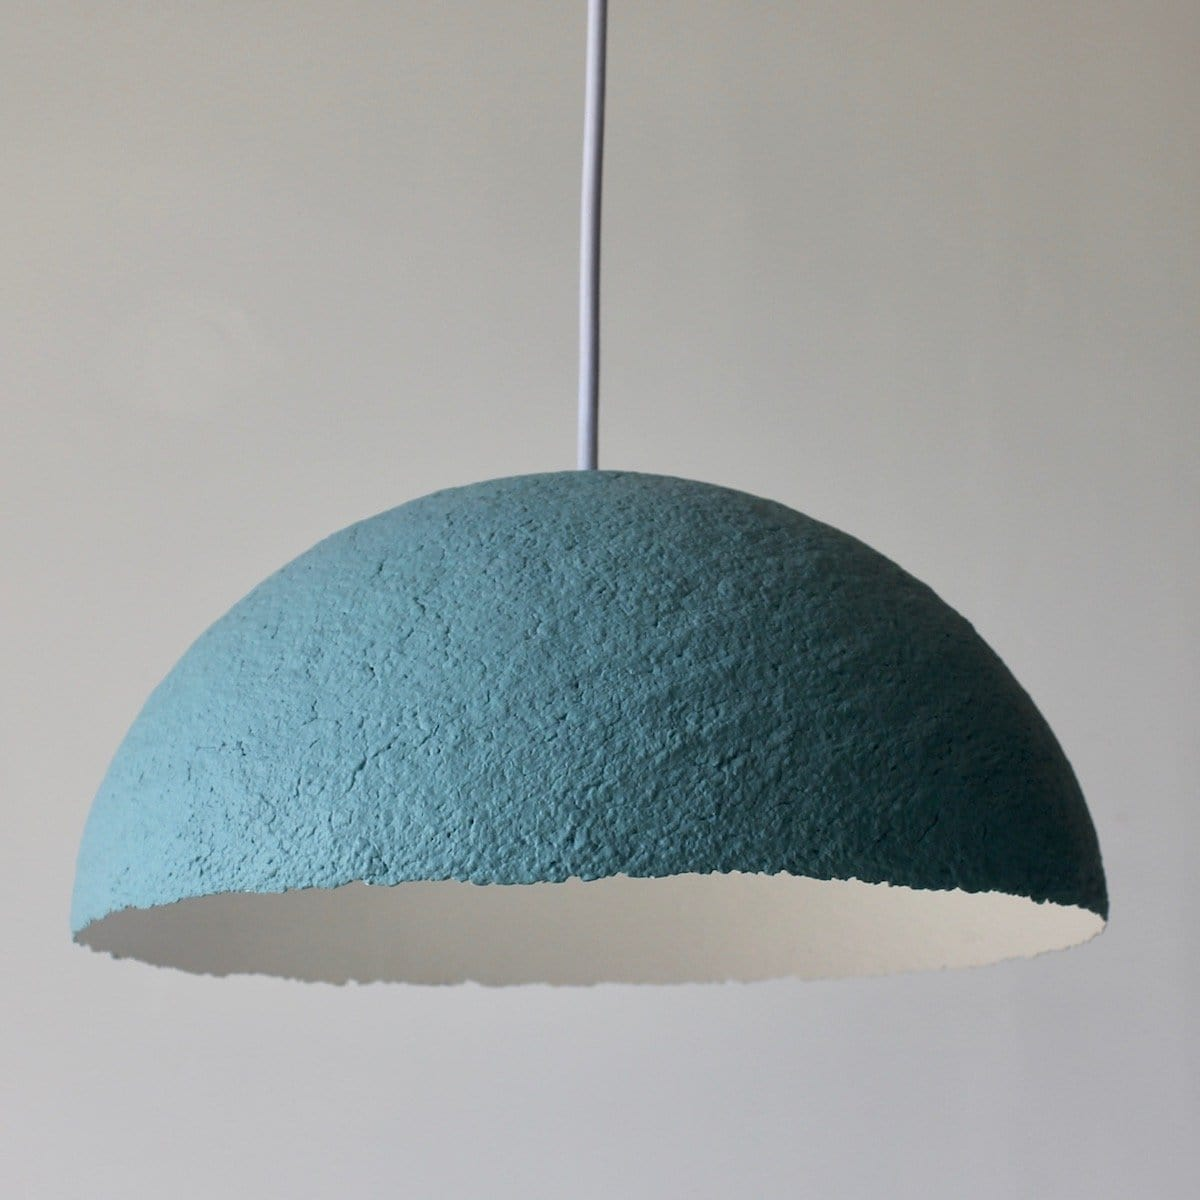 Lunula Pendant - Lagoon by Ode to Elma | Shop Lighting | Greenhouse Interiors